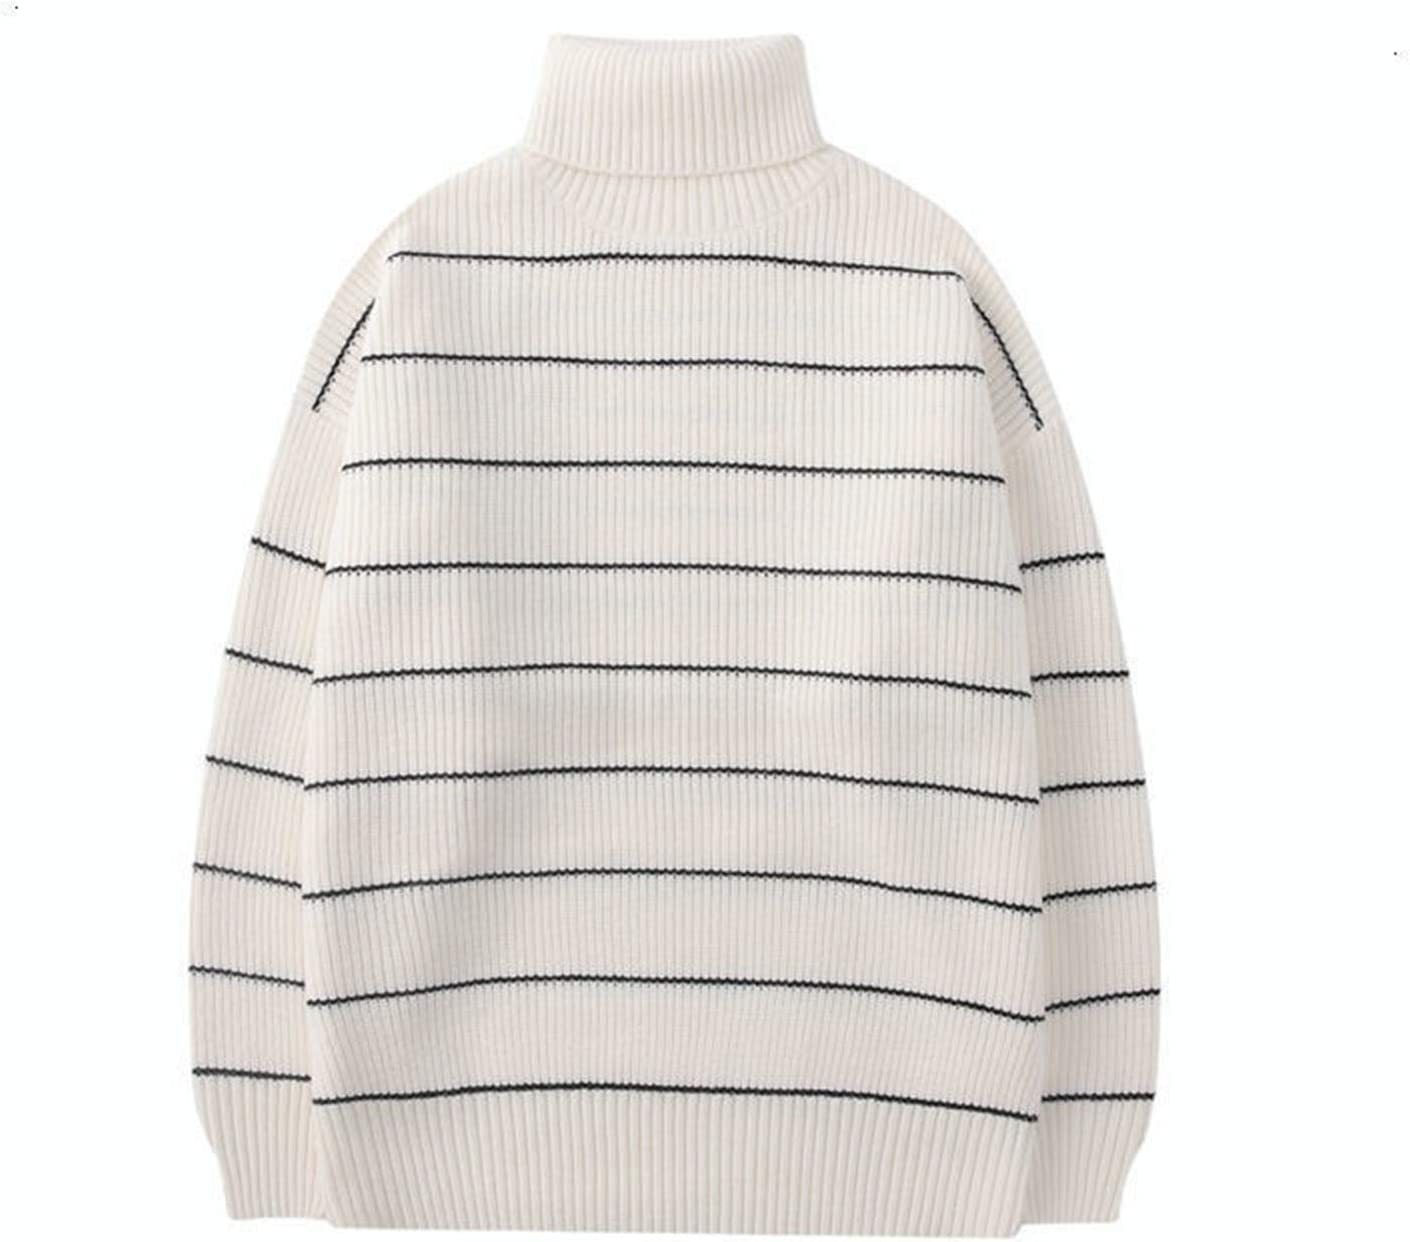 DZHT Sweaters Casual Winter Warm Men's Sweater Streetwear Woman Pullovers Clothing (Color : White, Size : Medium)